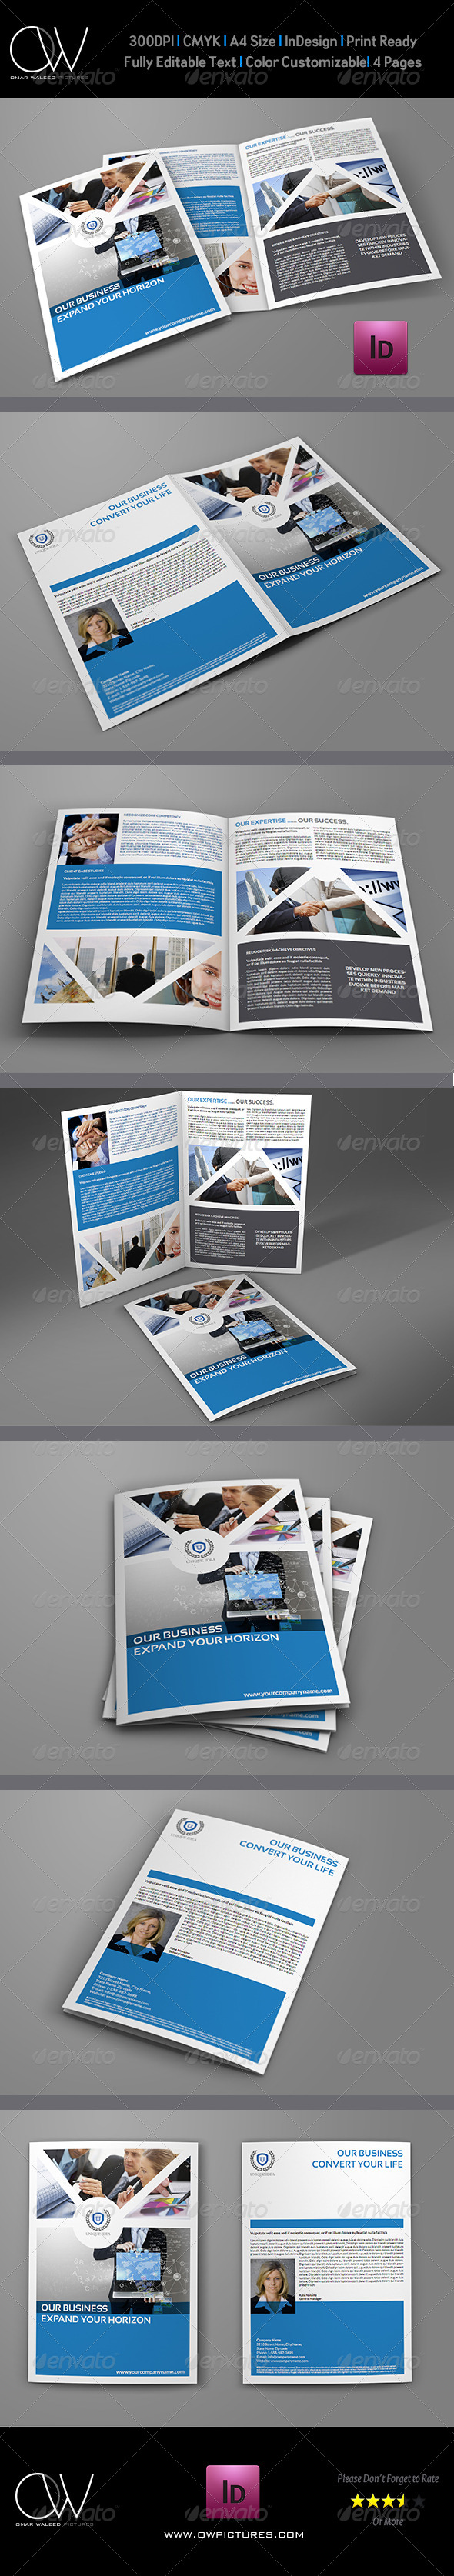 Company Brochure Bi-Fold Template Vol.3 - Corporate Brochures